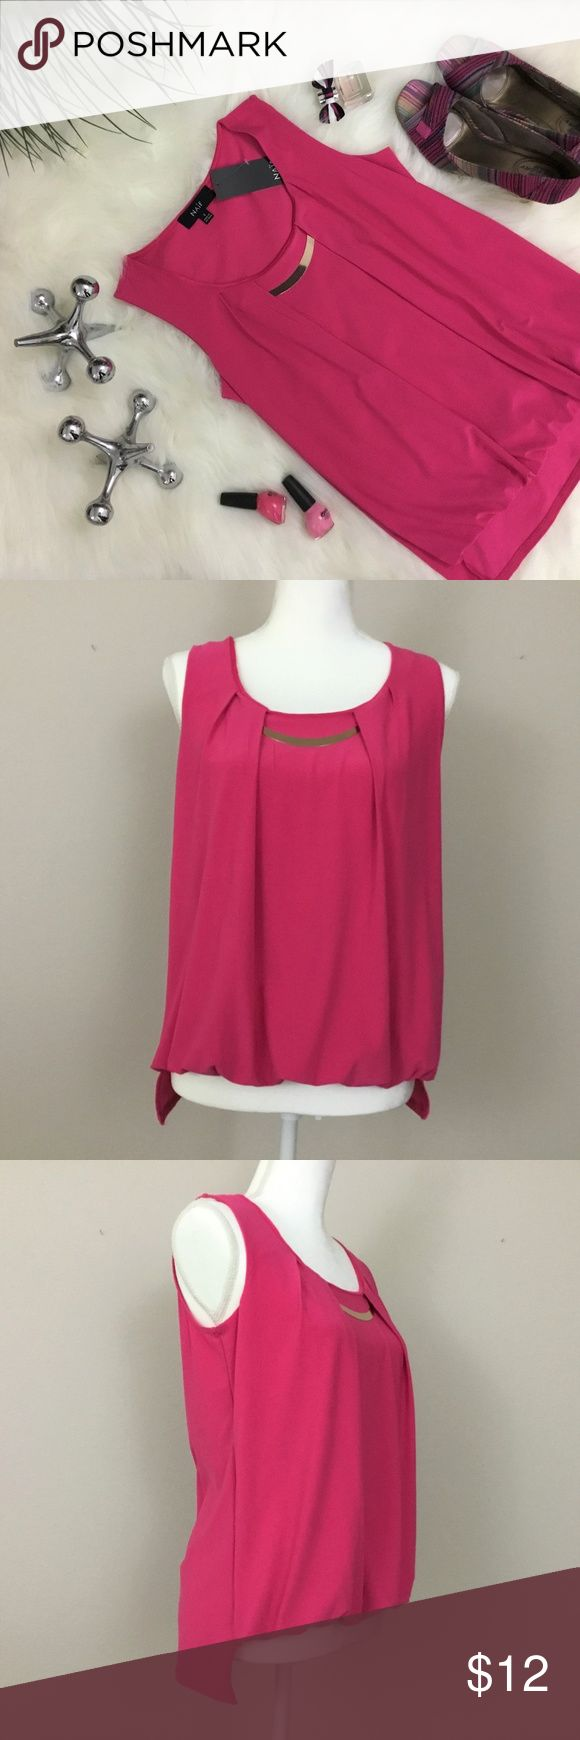 Naif magenta sleeveless top Naif sleeveless pullover top. It's a very pretty shade of magenta and has a gold metal detail near the neckline which …